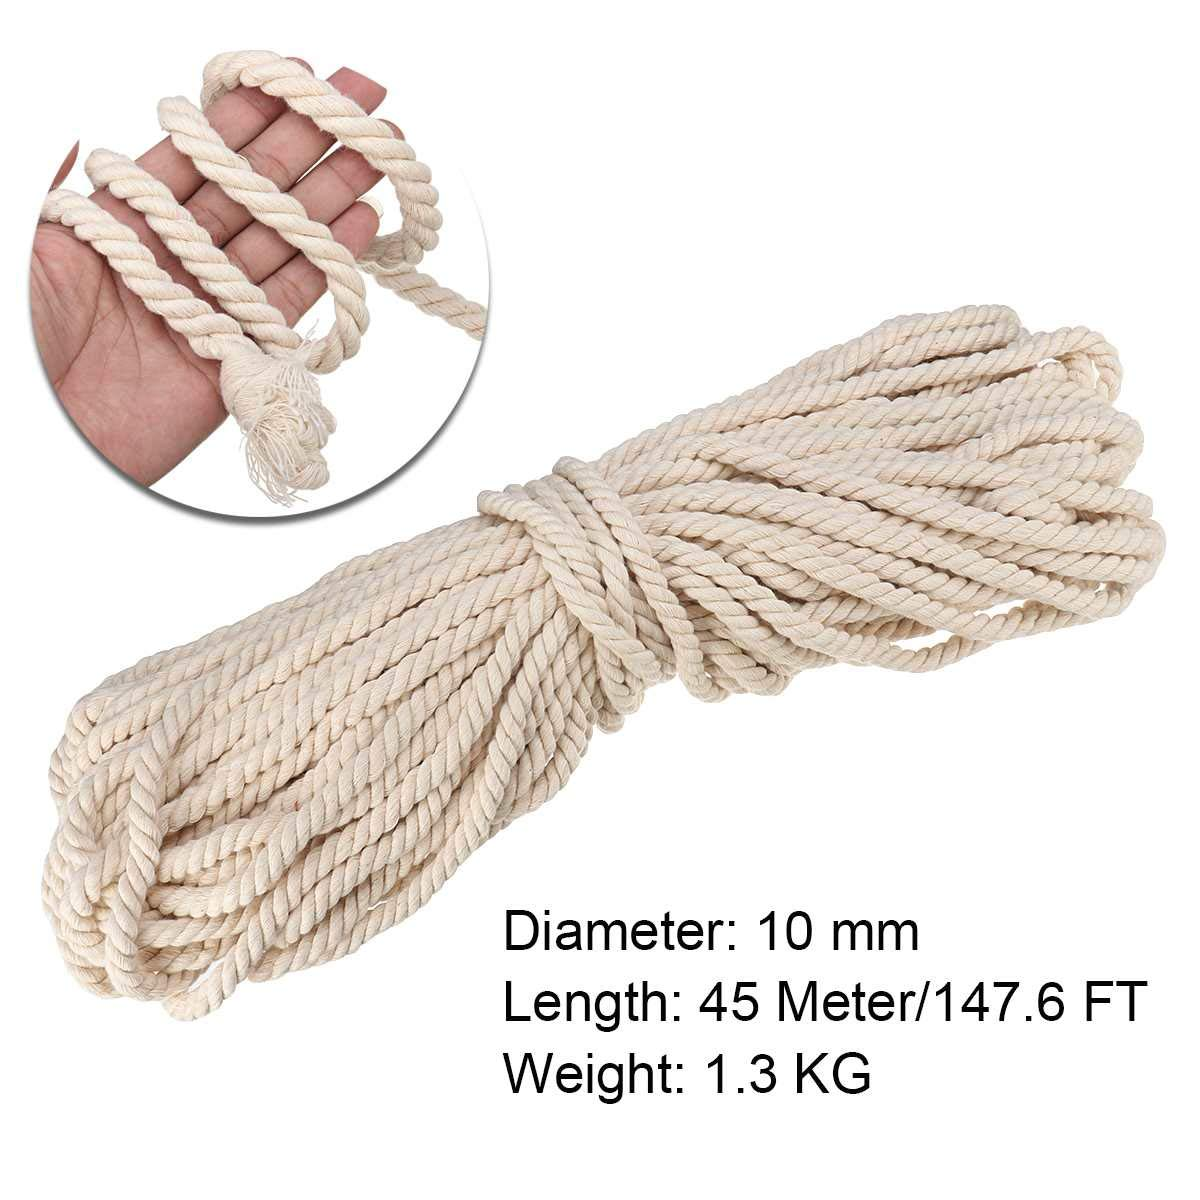 FINCOS Macrame Rope Natural Beige 10mm 45m Twisted Cord for Handmade Enthusiasts for Artisan DIY Hand Craft Cords Pure Cotton by FINCOS (Image #1)